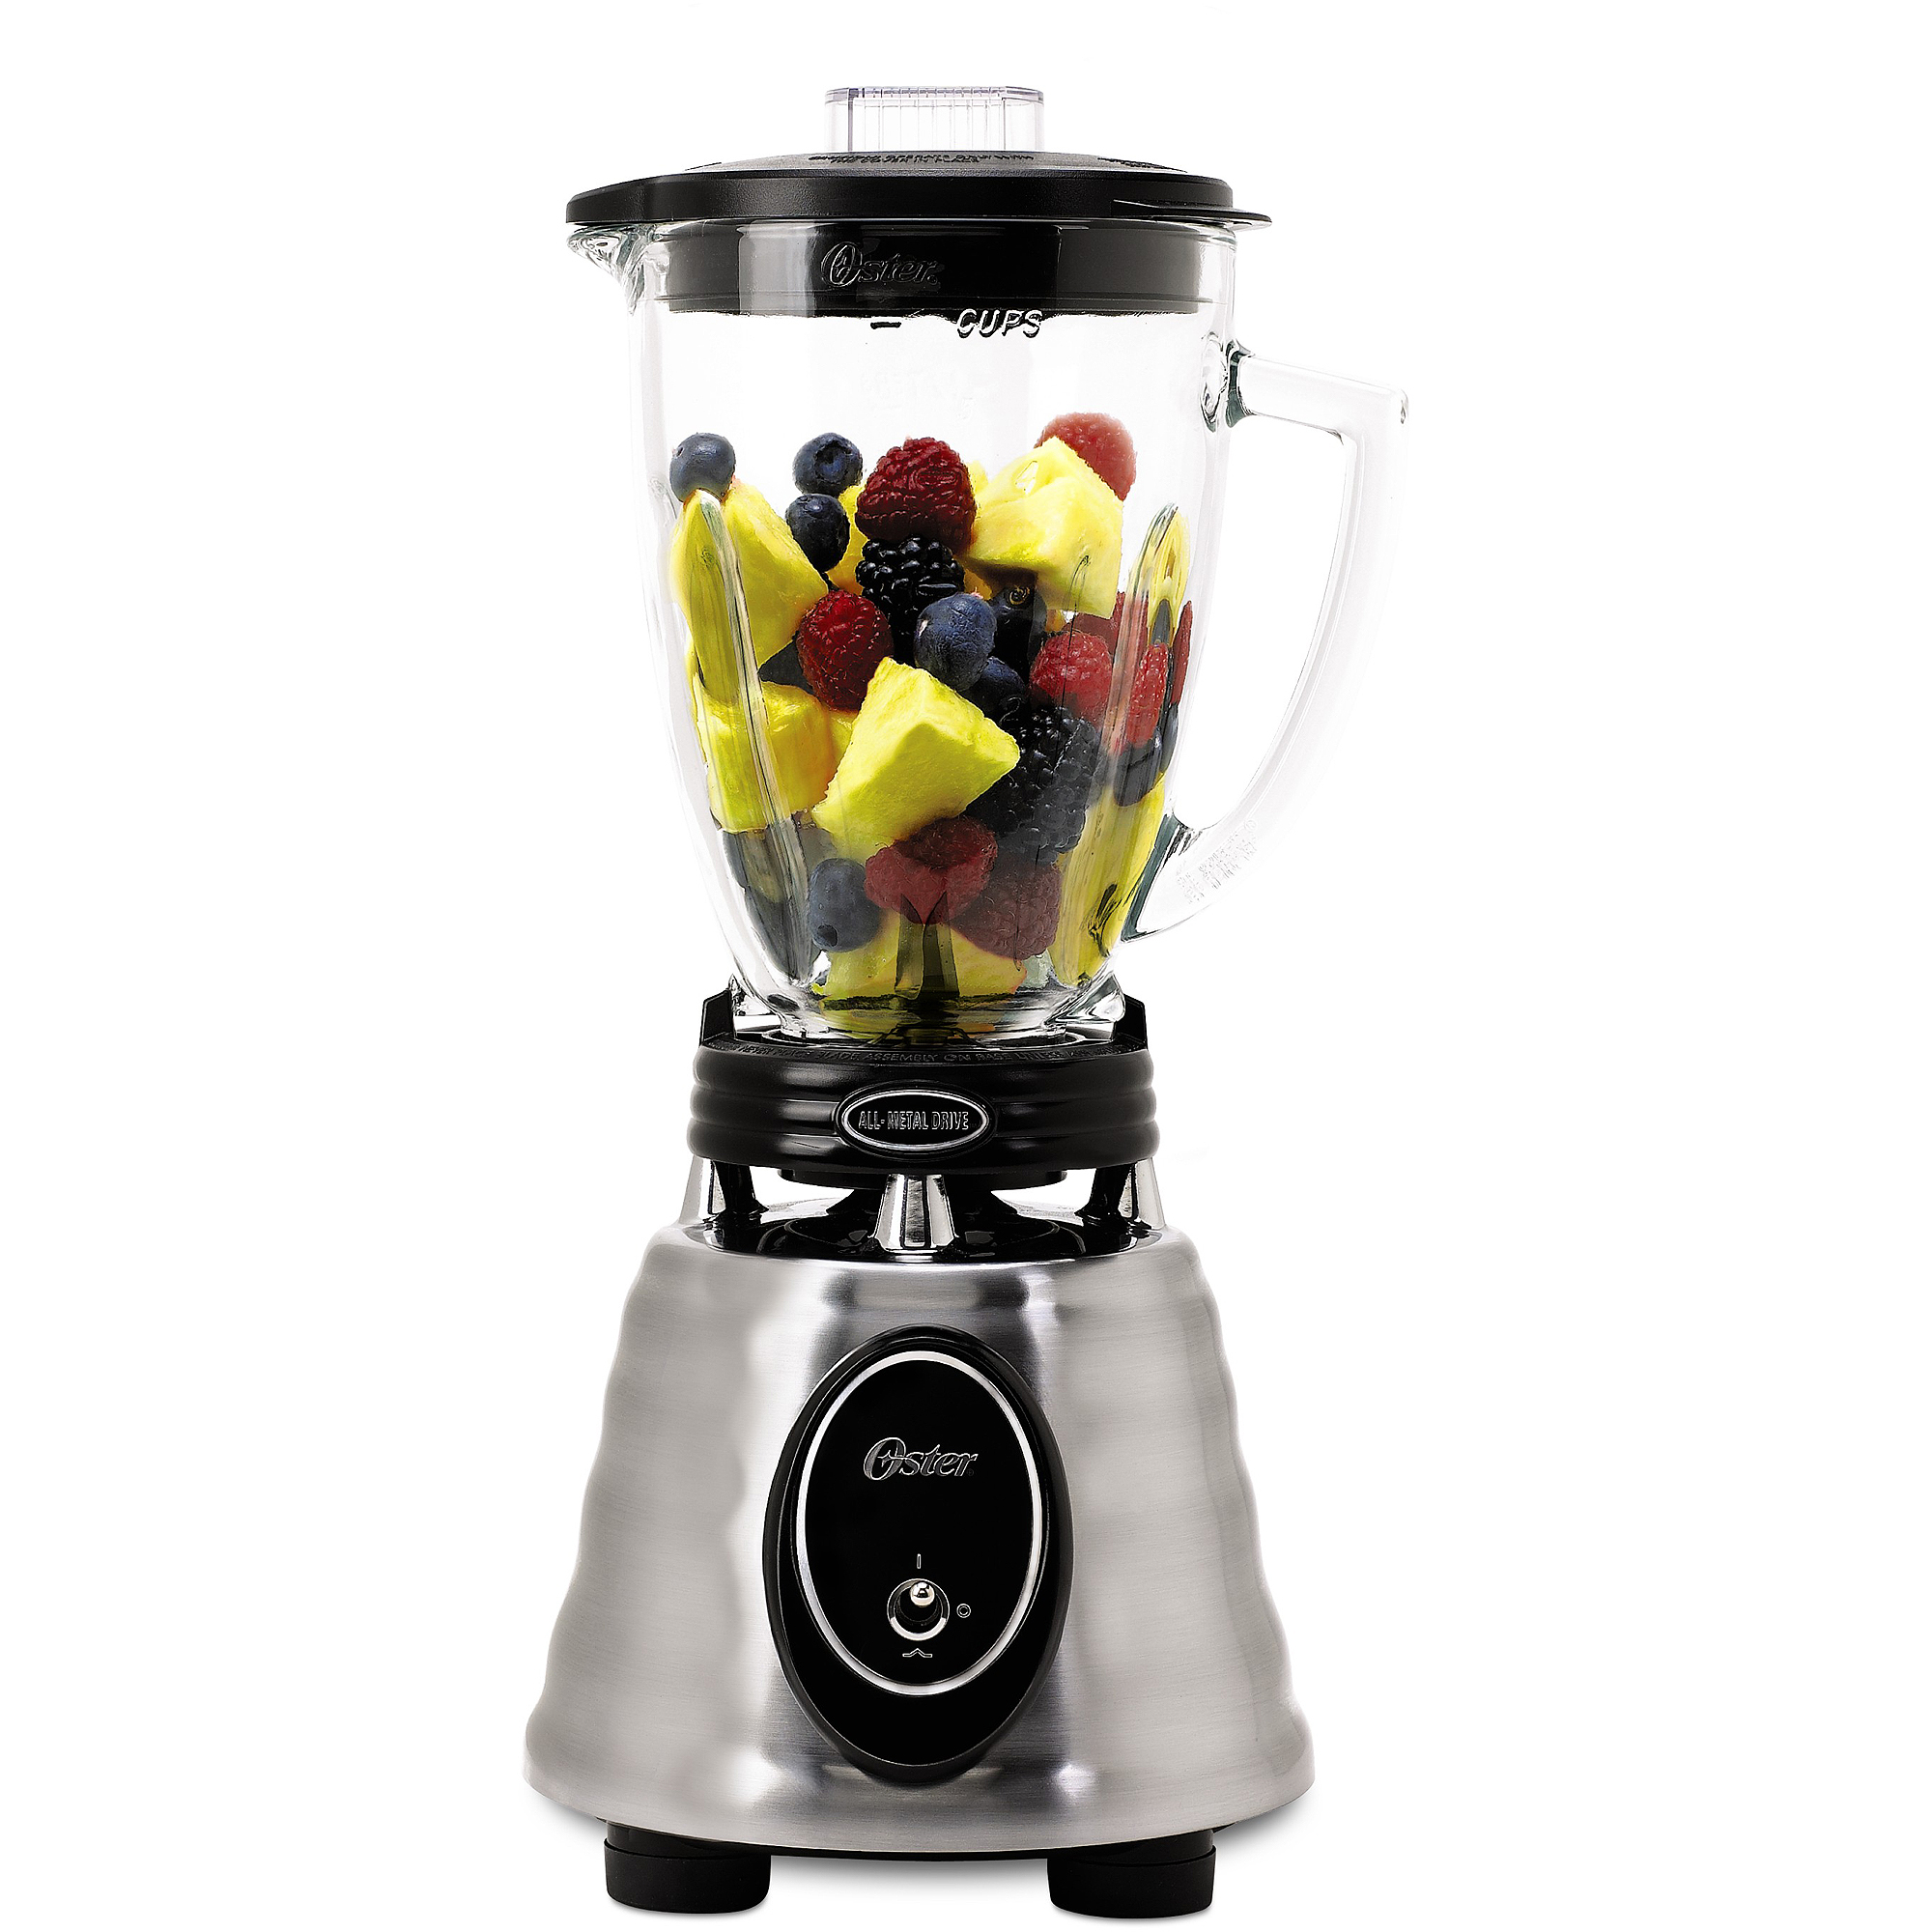 Oster Heritage Blend 400  2 Speed Blender Stainless Steel (BPCT02-BA0-NP0)